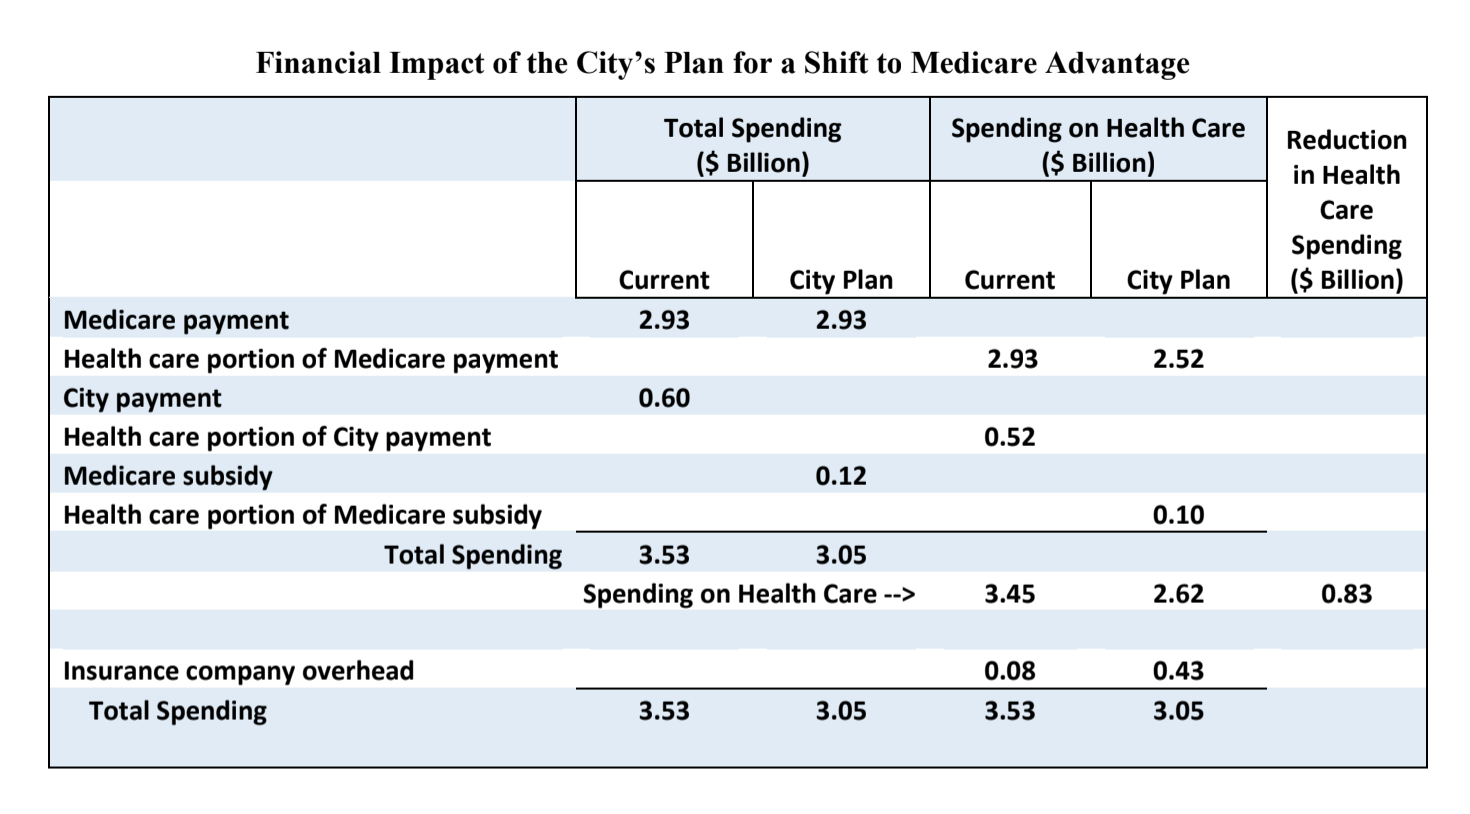 Table illustrating Financial Impact of the City's Plan for a Shift to Medicare Advantage